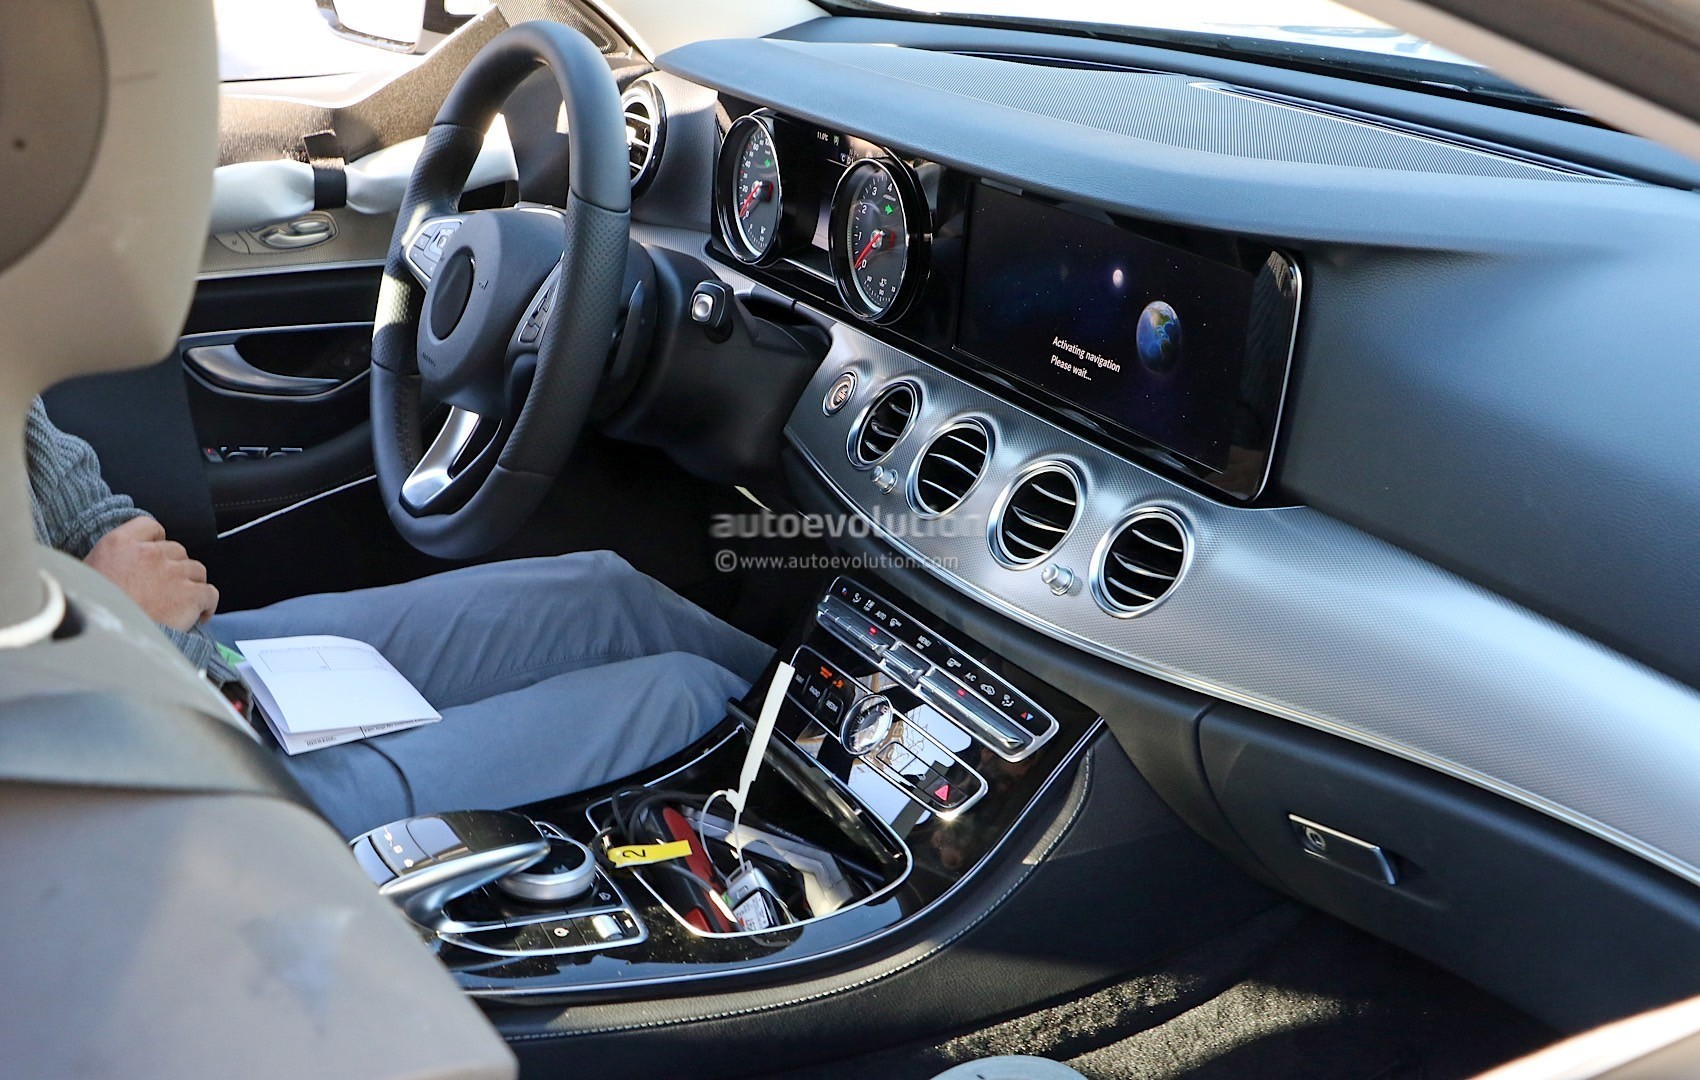 2017 Mercedes-Benz E-Class Interior Revealed in Latest Spyshots